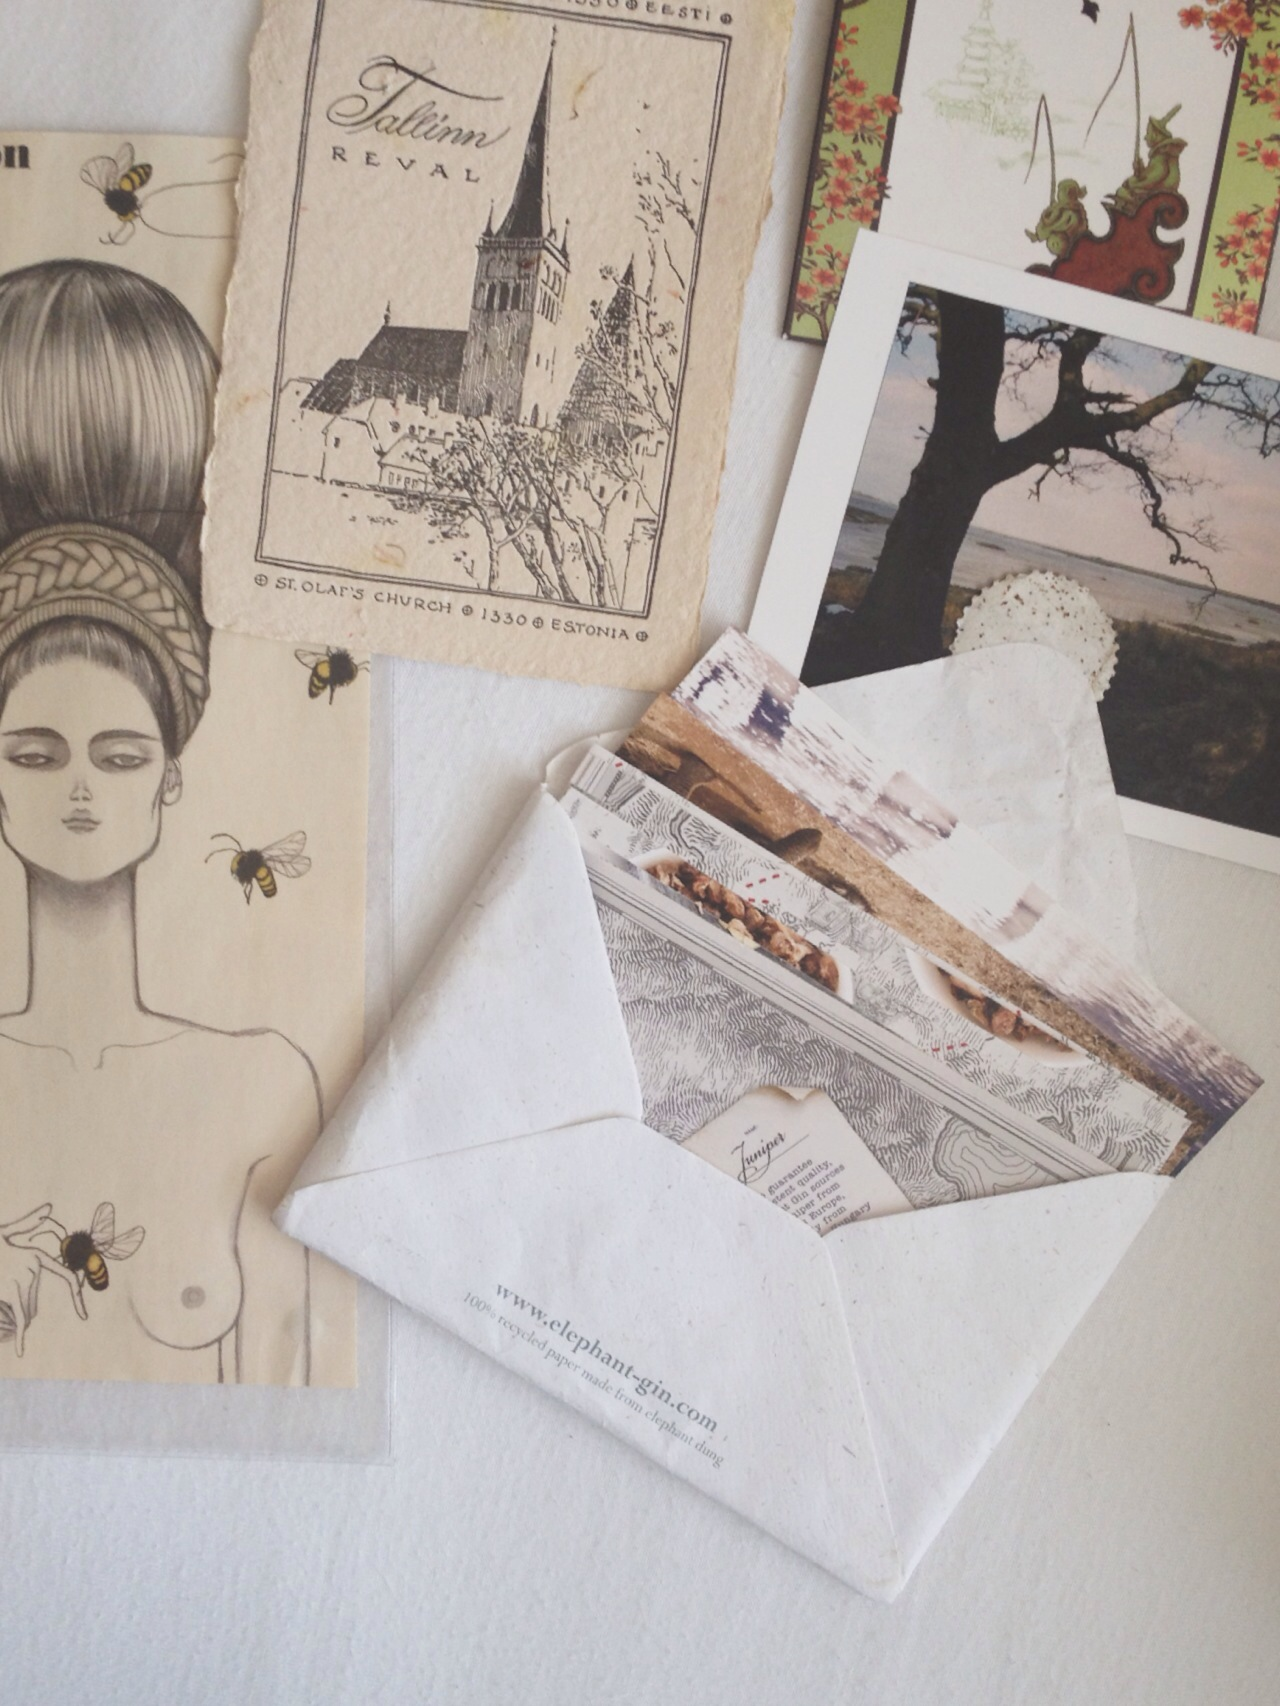 art collection, magazine cutouts, post cards, drawings, organic gathering, beautiful images, nudity, a woman and bees, bumble bees, oriental print, loveliness